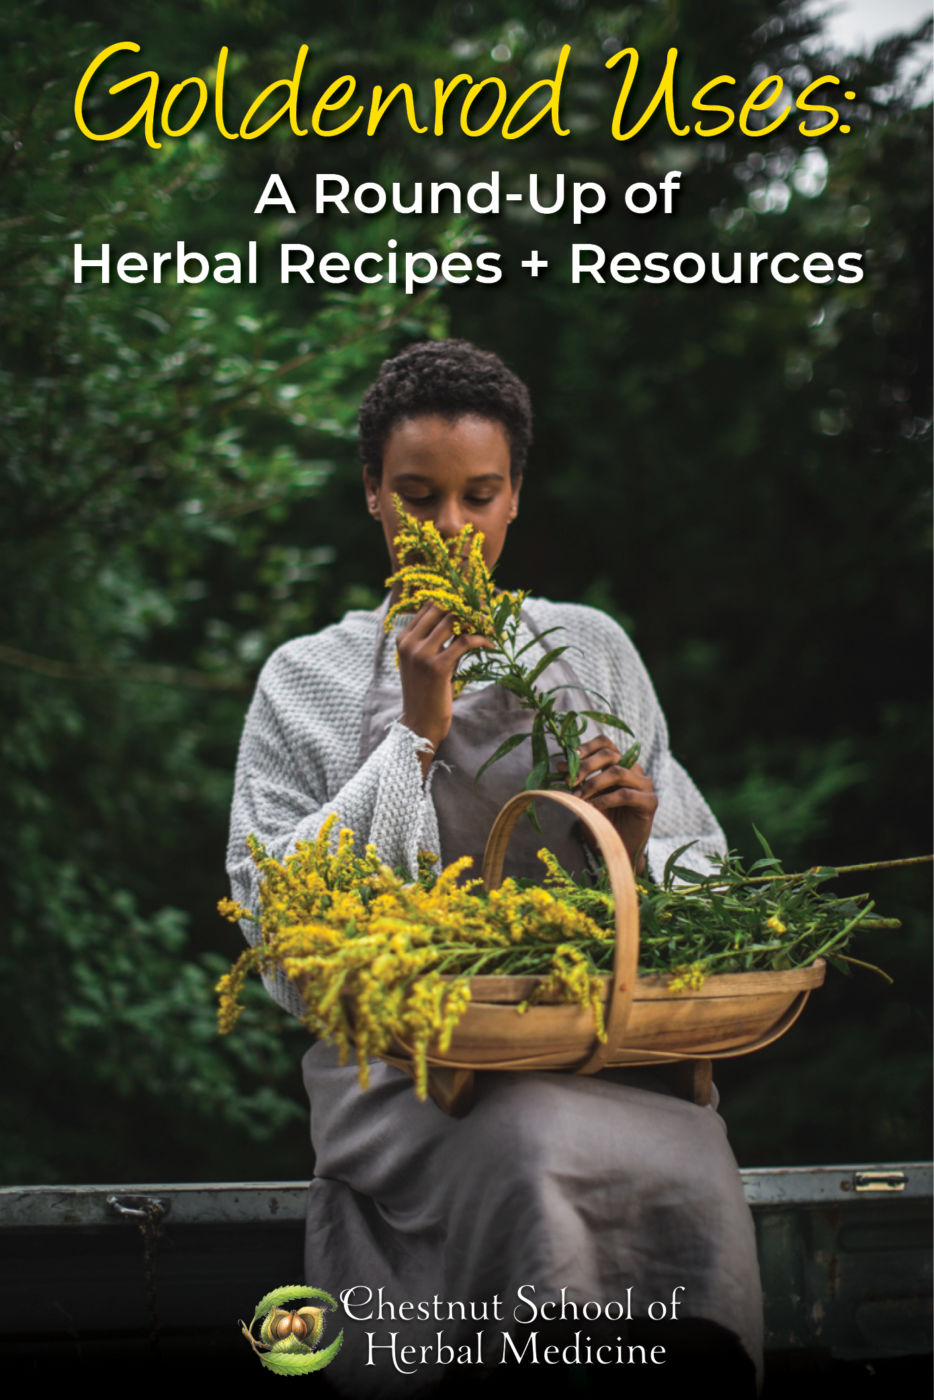 Goldenrod Uses: A Round-Up of Herbal Recipes + Resources